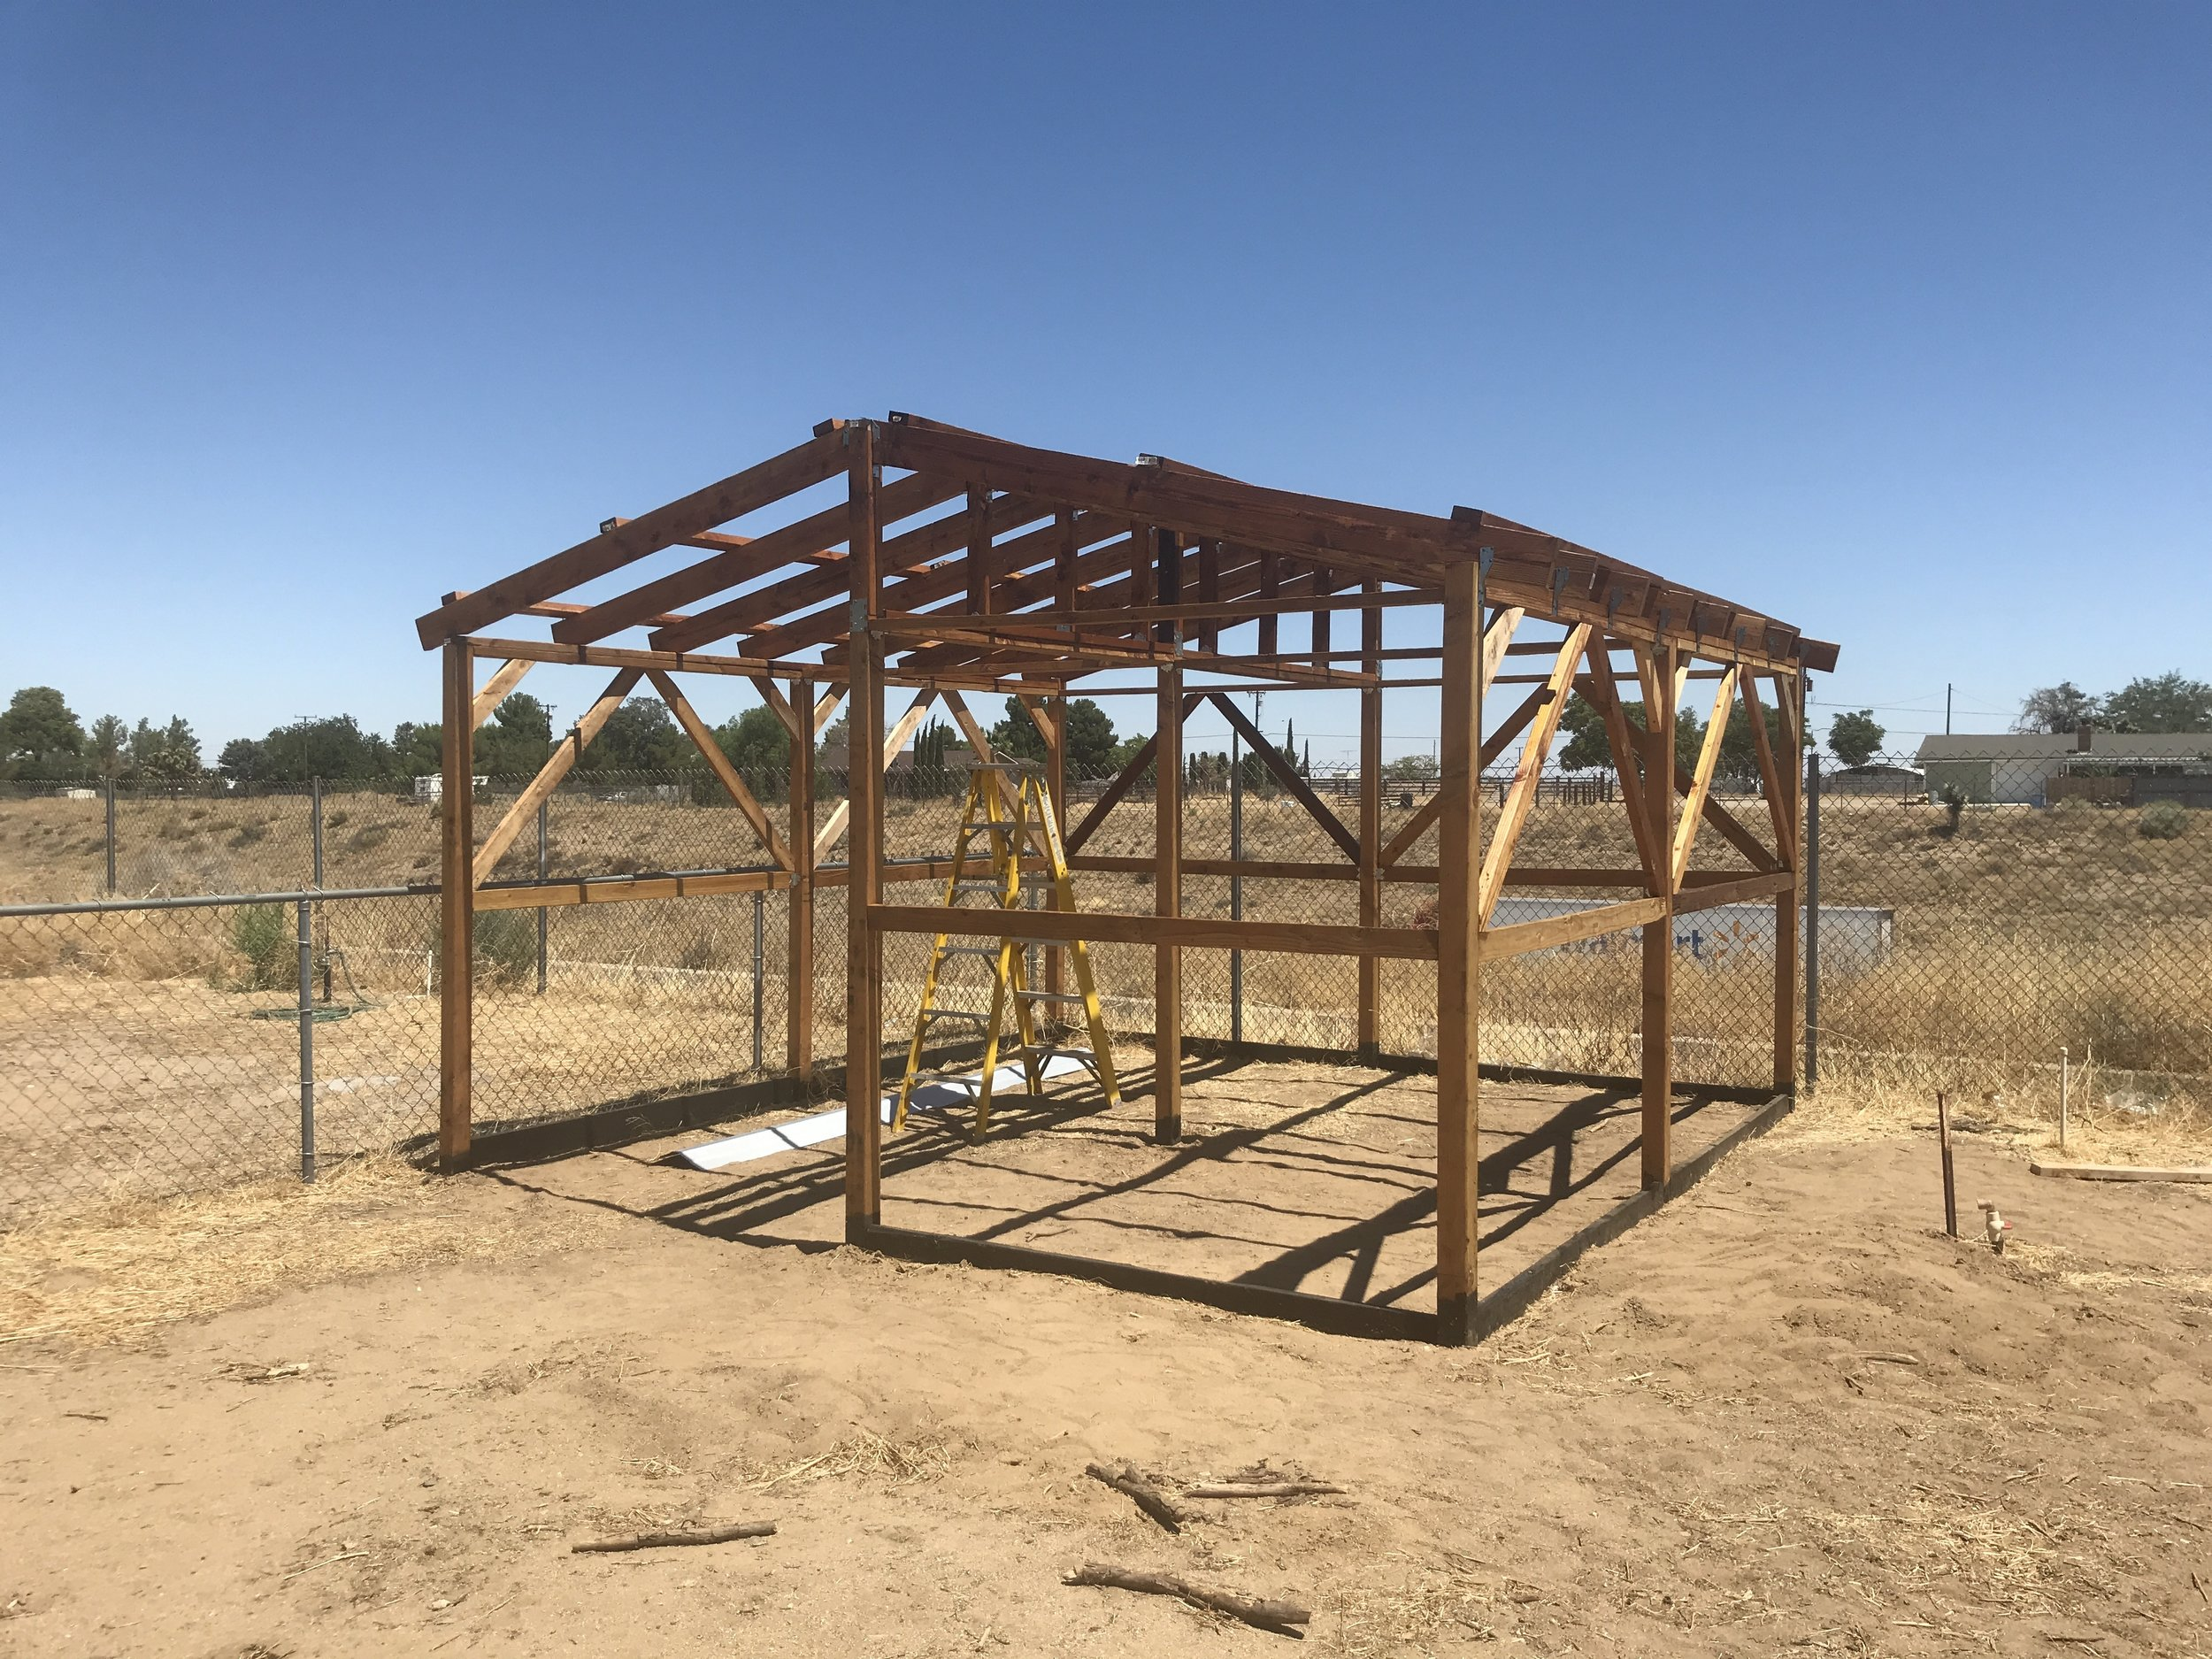 Treated the wood, added cross bars for support and 2x4's on top for attaching metal roofing.